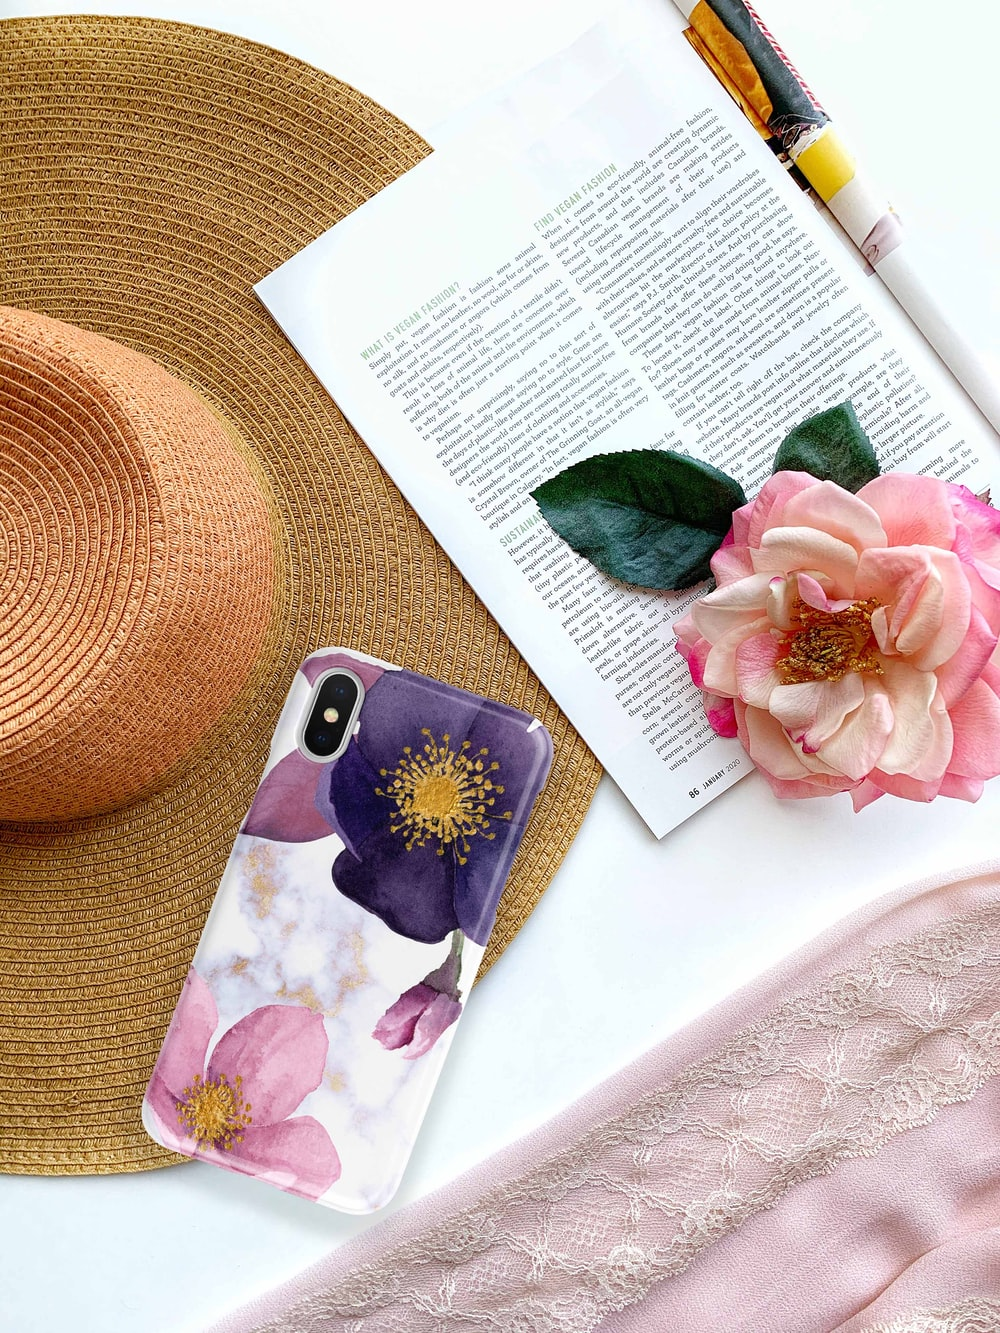 pink and black floral iphone case on book page